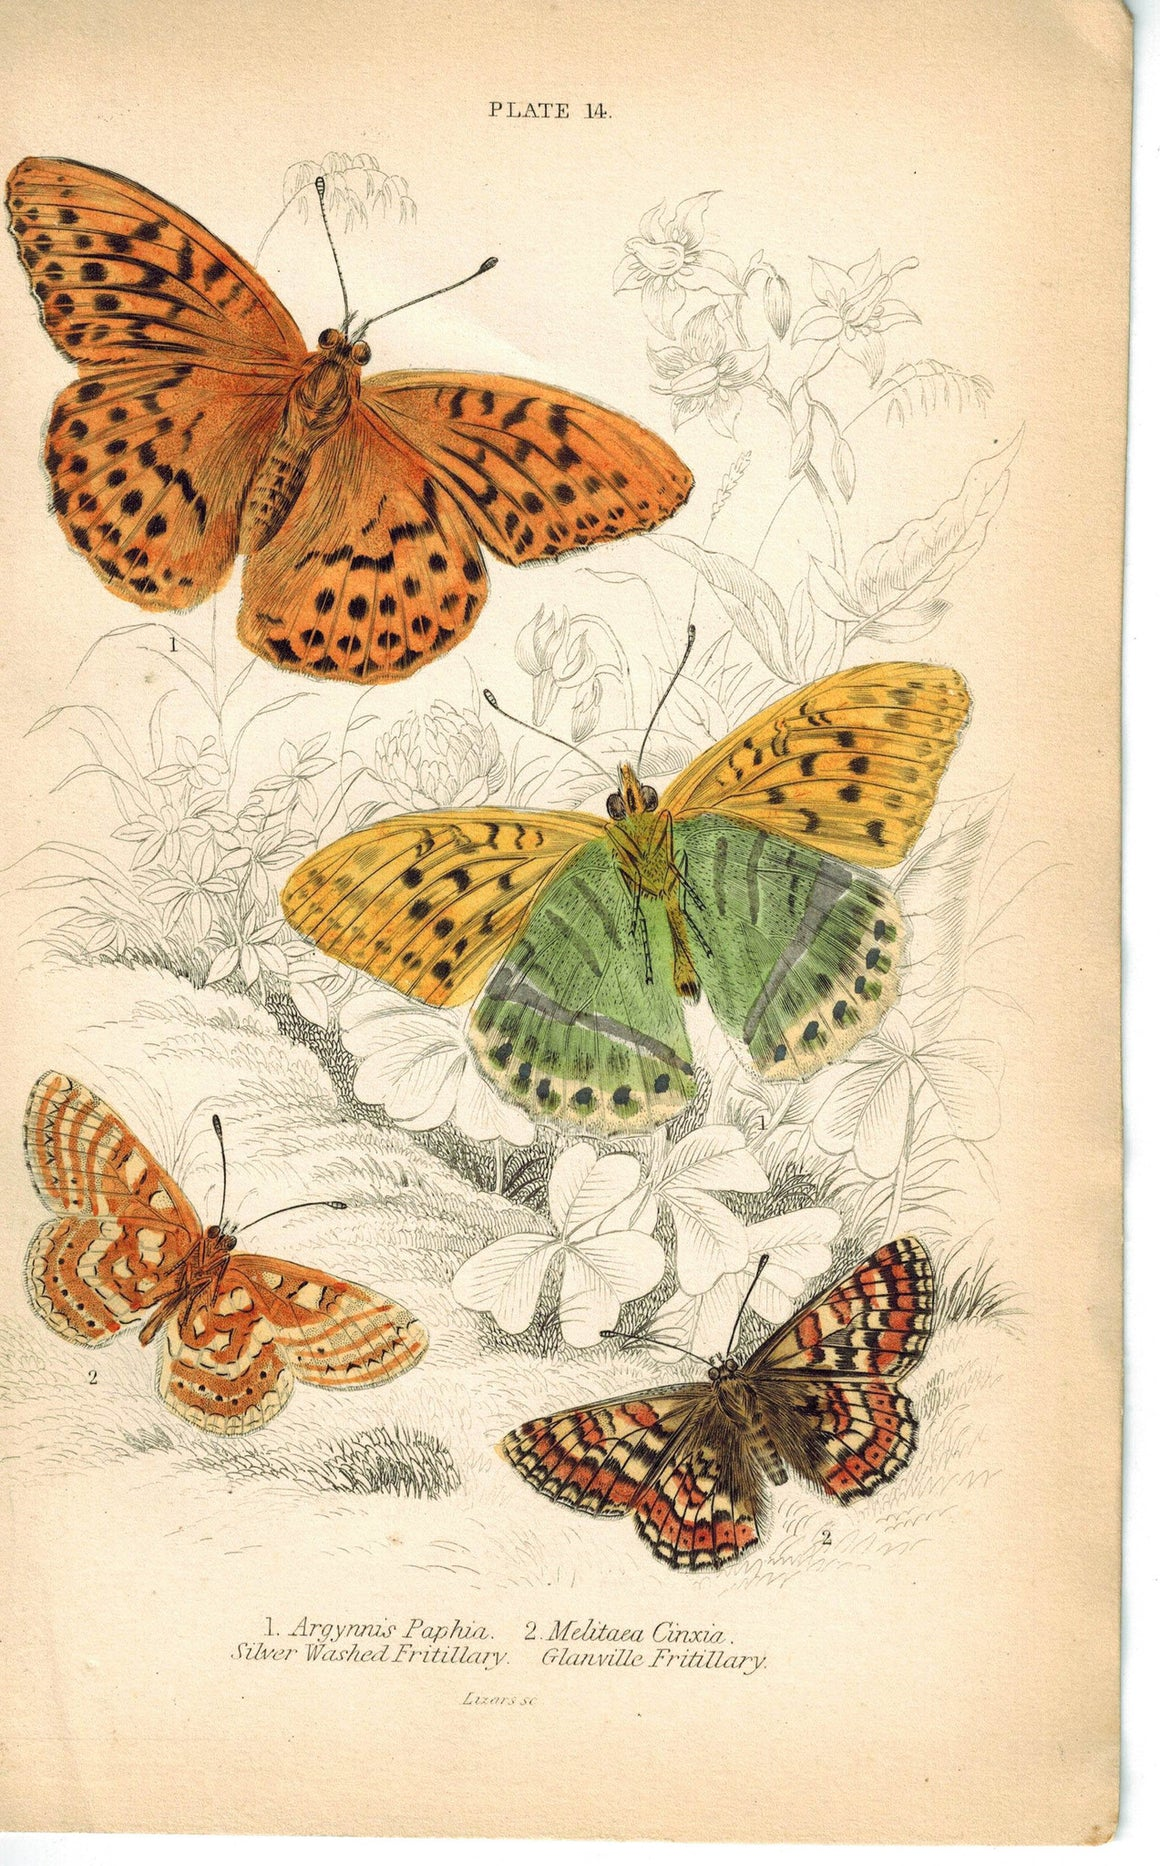 Silver Washed & Glanville Fritillary Butterfly 1835 Antique Jardine Duncan Print